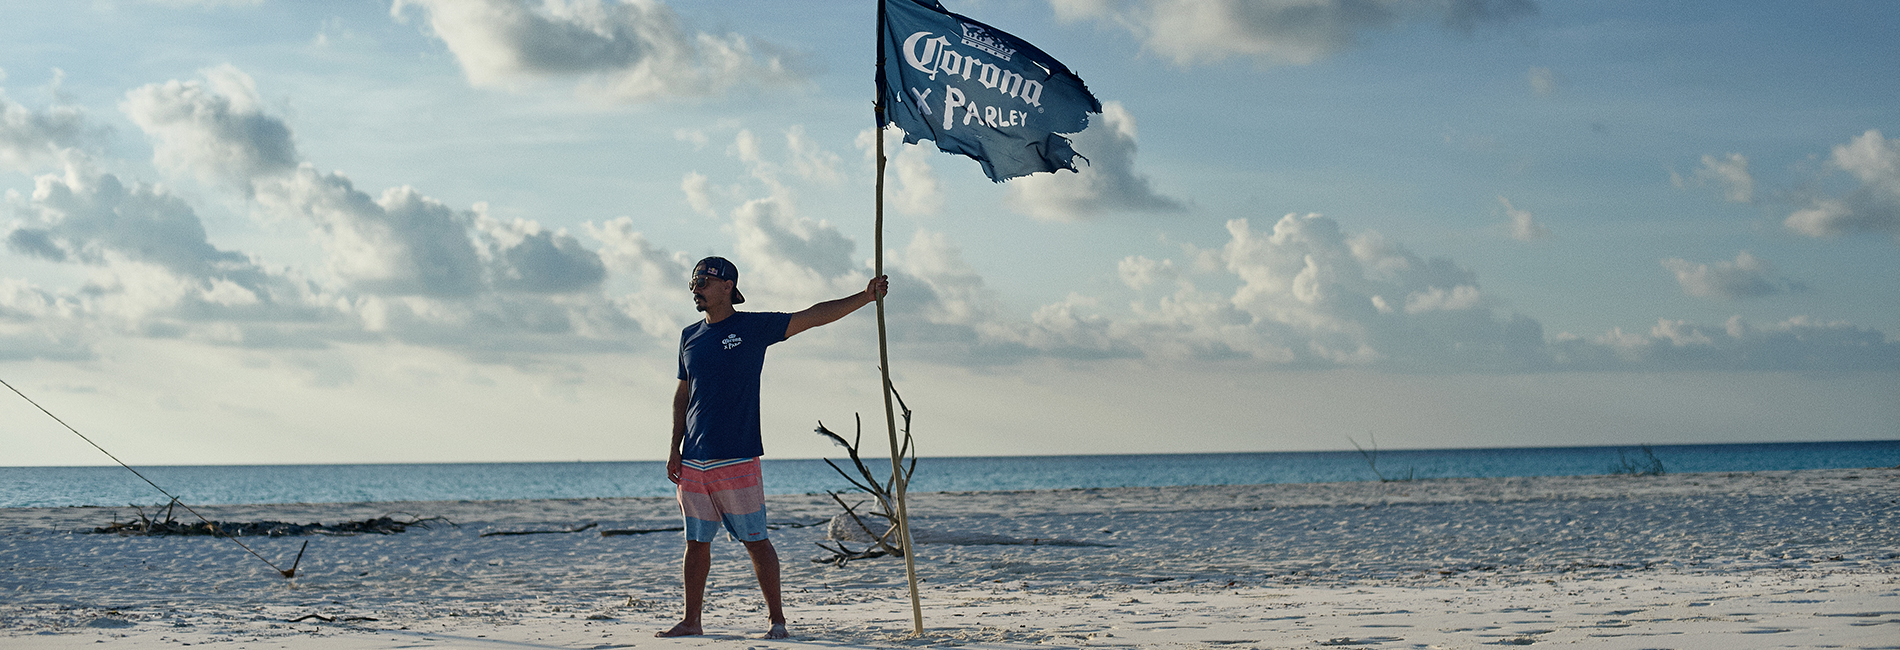 Corona and Parley for the Oceans form a global partnership to address marine plastic pollution; commitment to protect 100 islands by 2020.